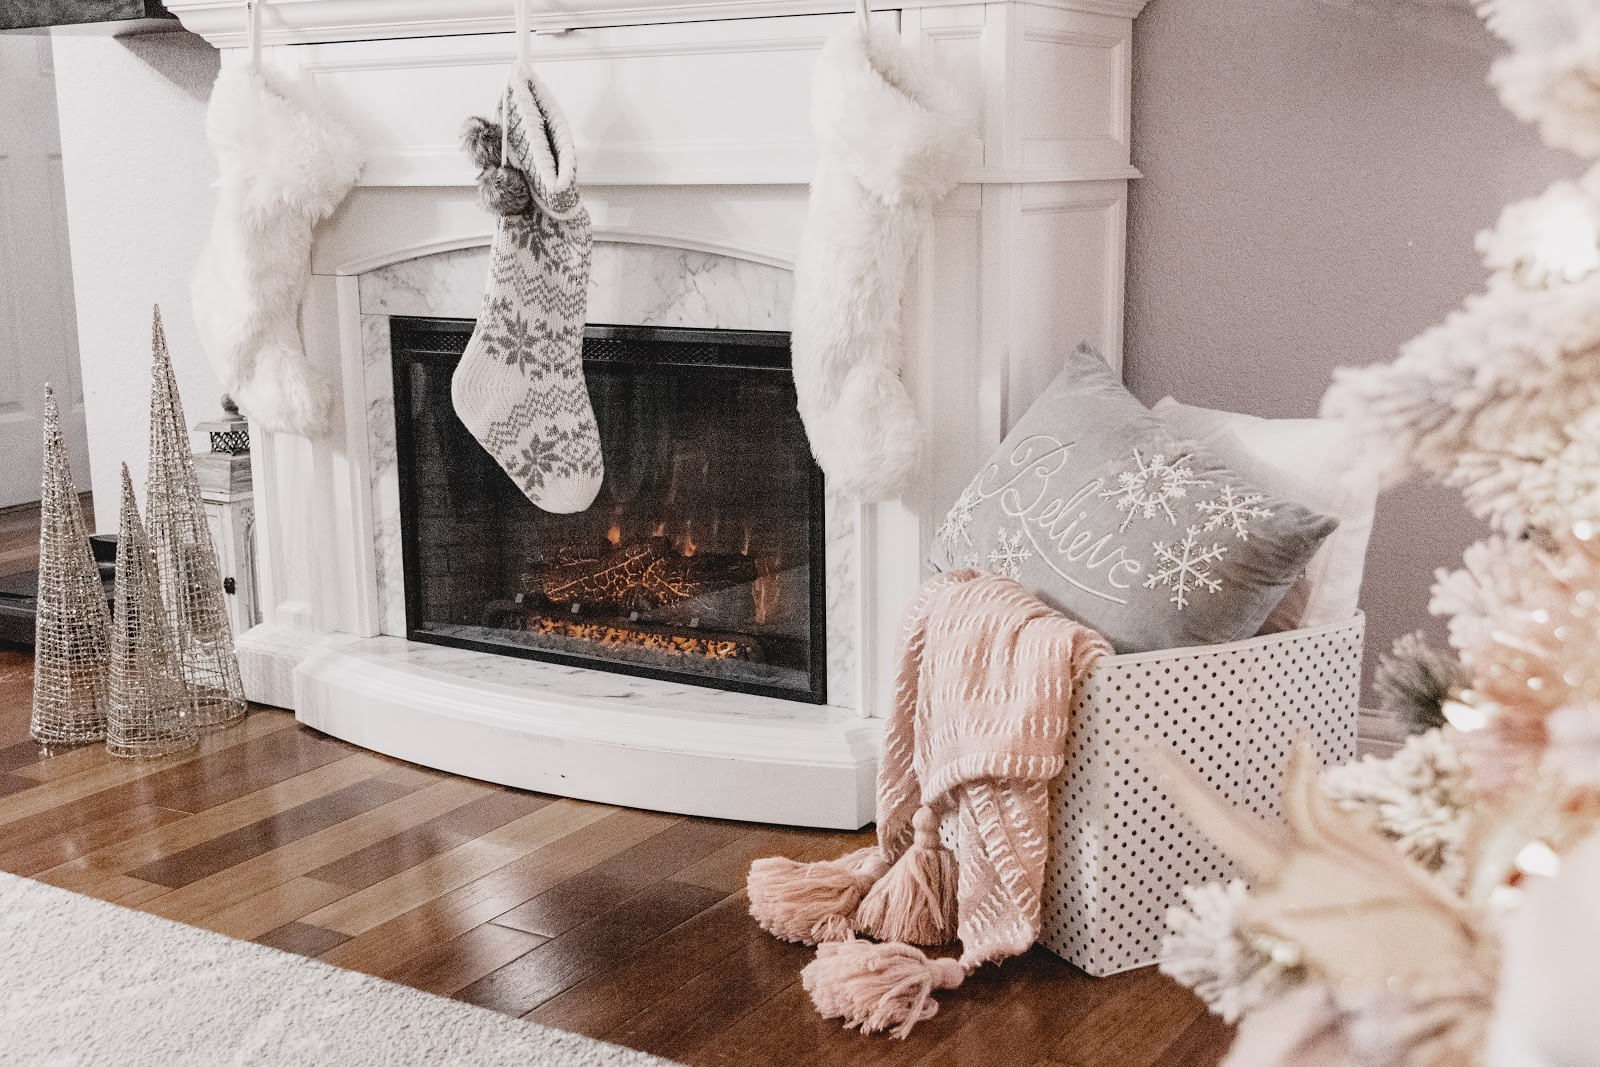 Holiday Giving to St. Jude with Gordmans  Christmas Decor Mantle Decor Holiday Gift Ideas Blush White Gray Fireplace Believe Pillow Blanket Cone Trees Silver and Gold Cozy Stockings Fur Stockings Knit Stockings